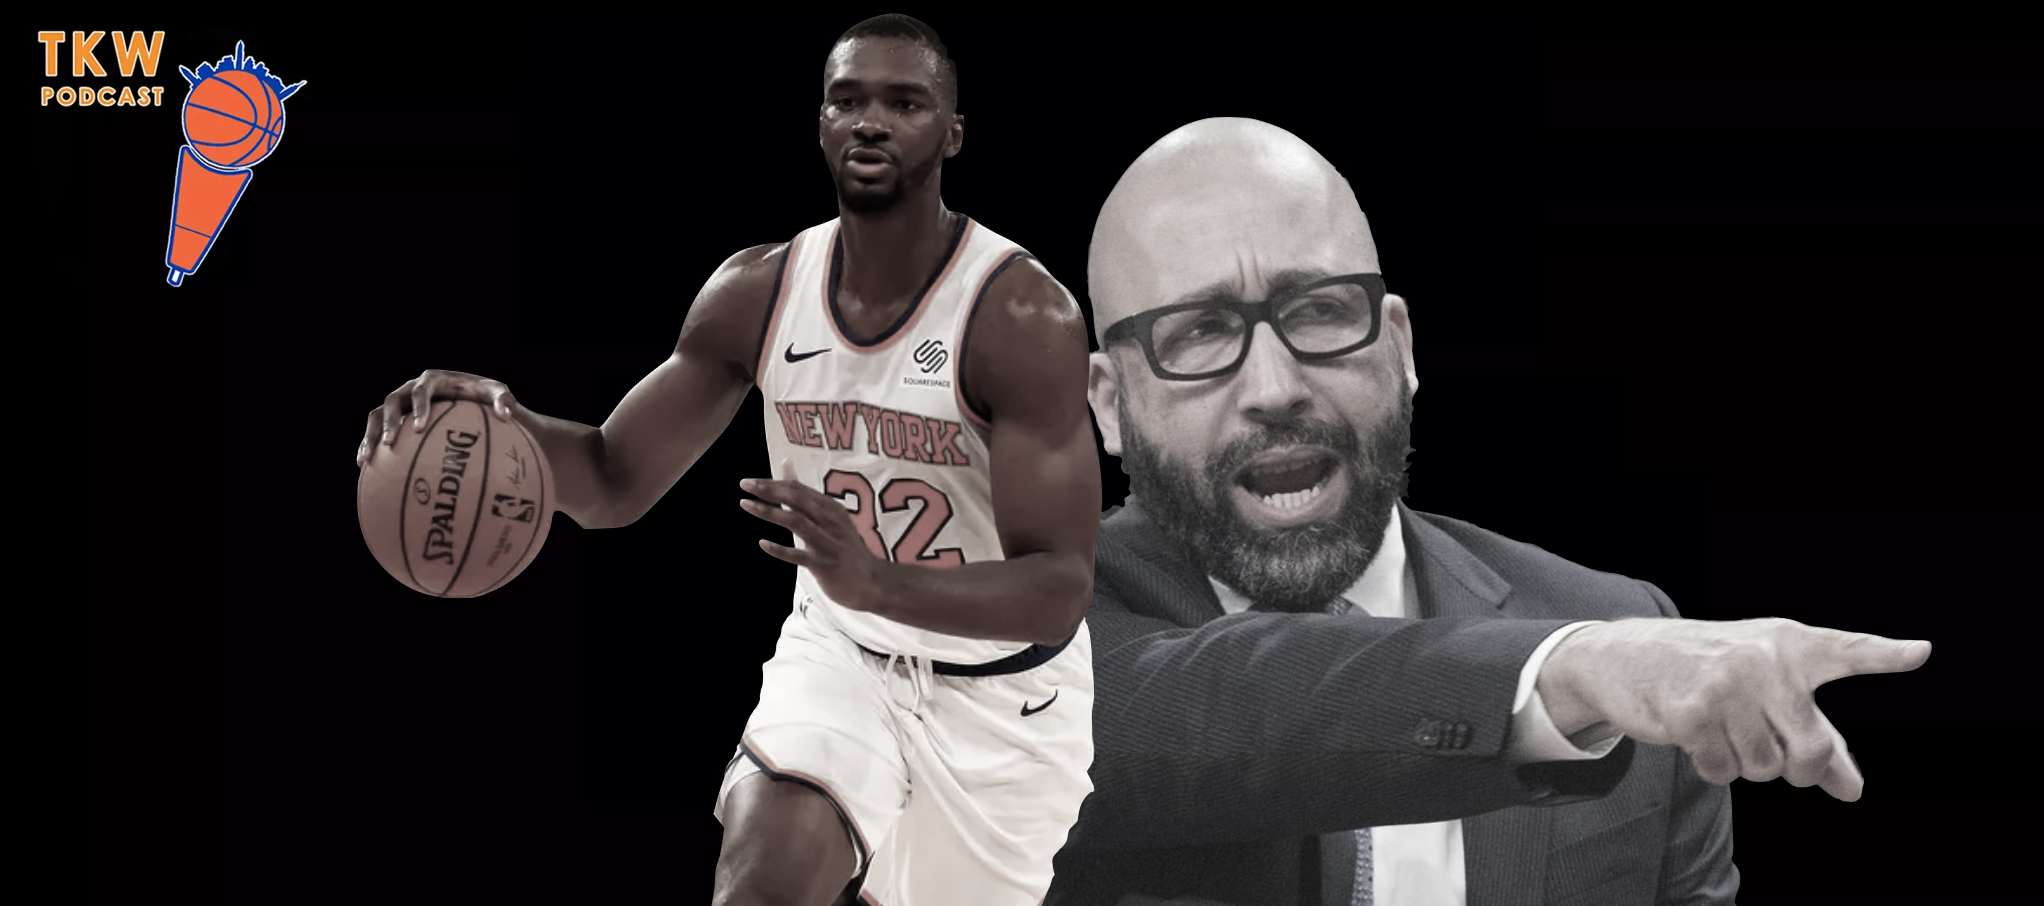 TKW Podcast: Frankie Point Guard, Knicks-Warriors Roundup & Fiz's Lineup Choices